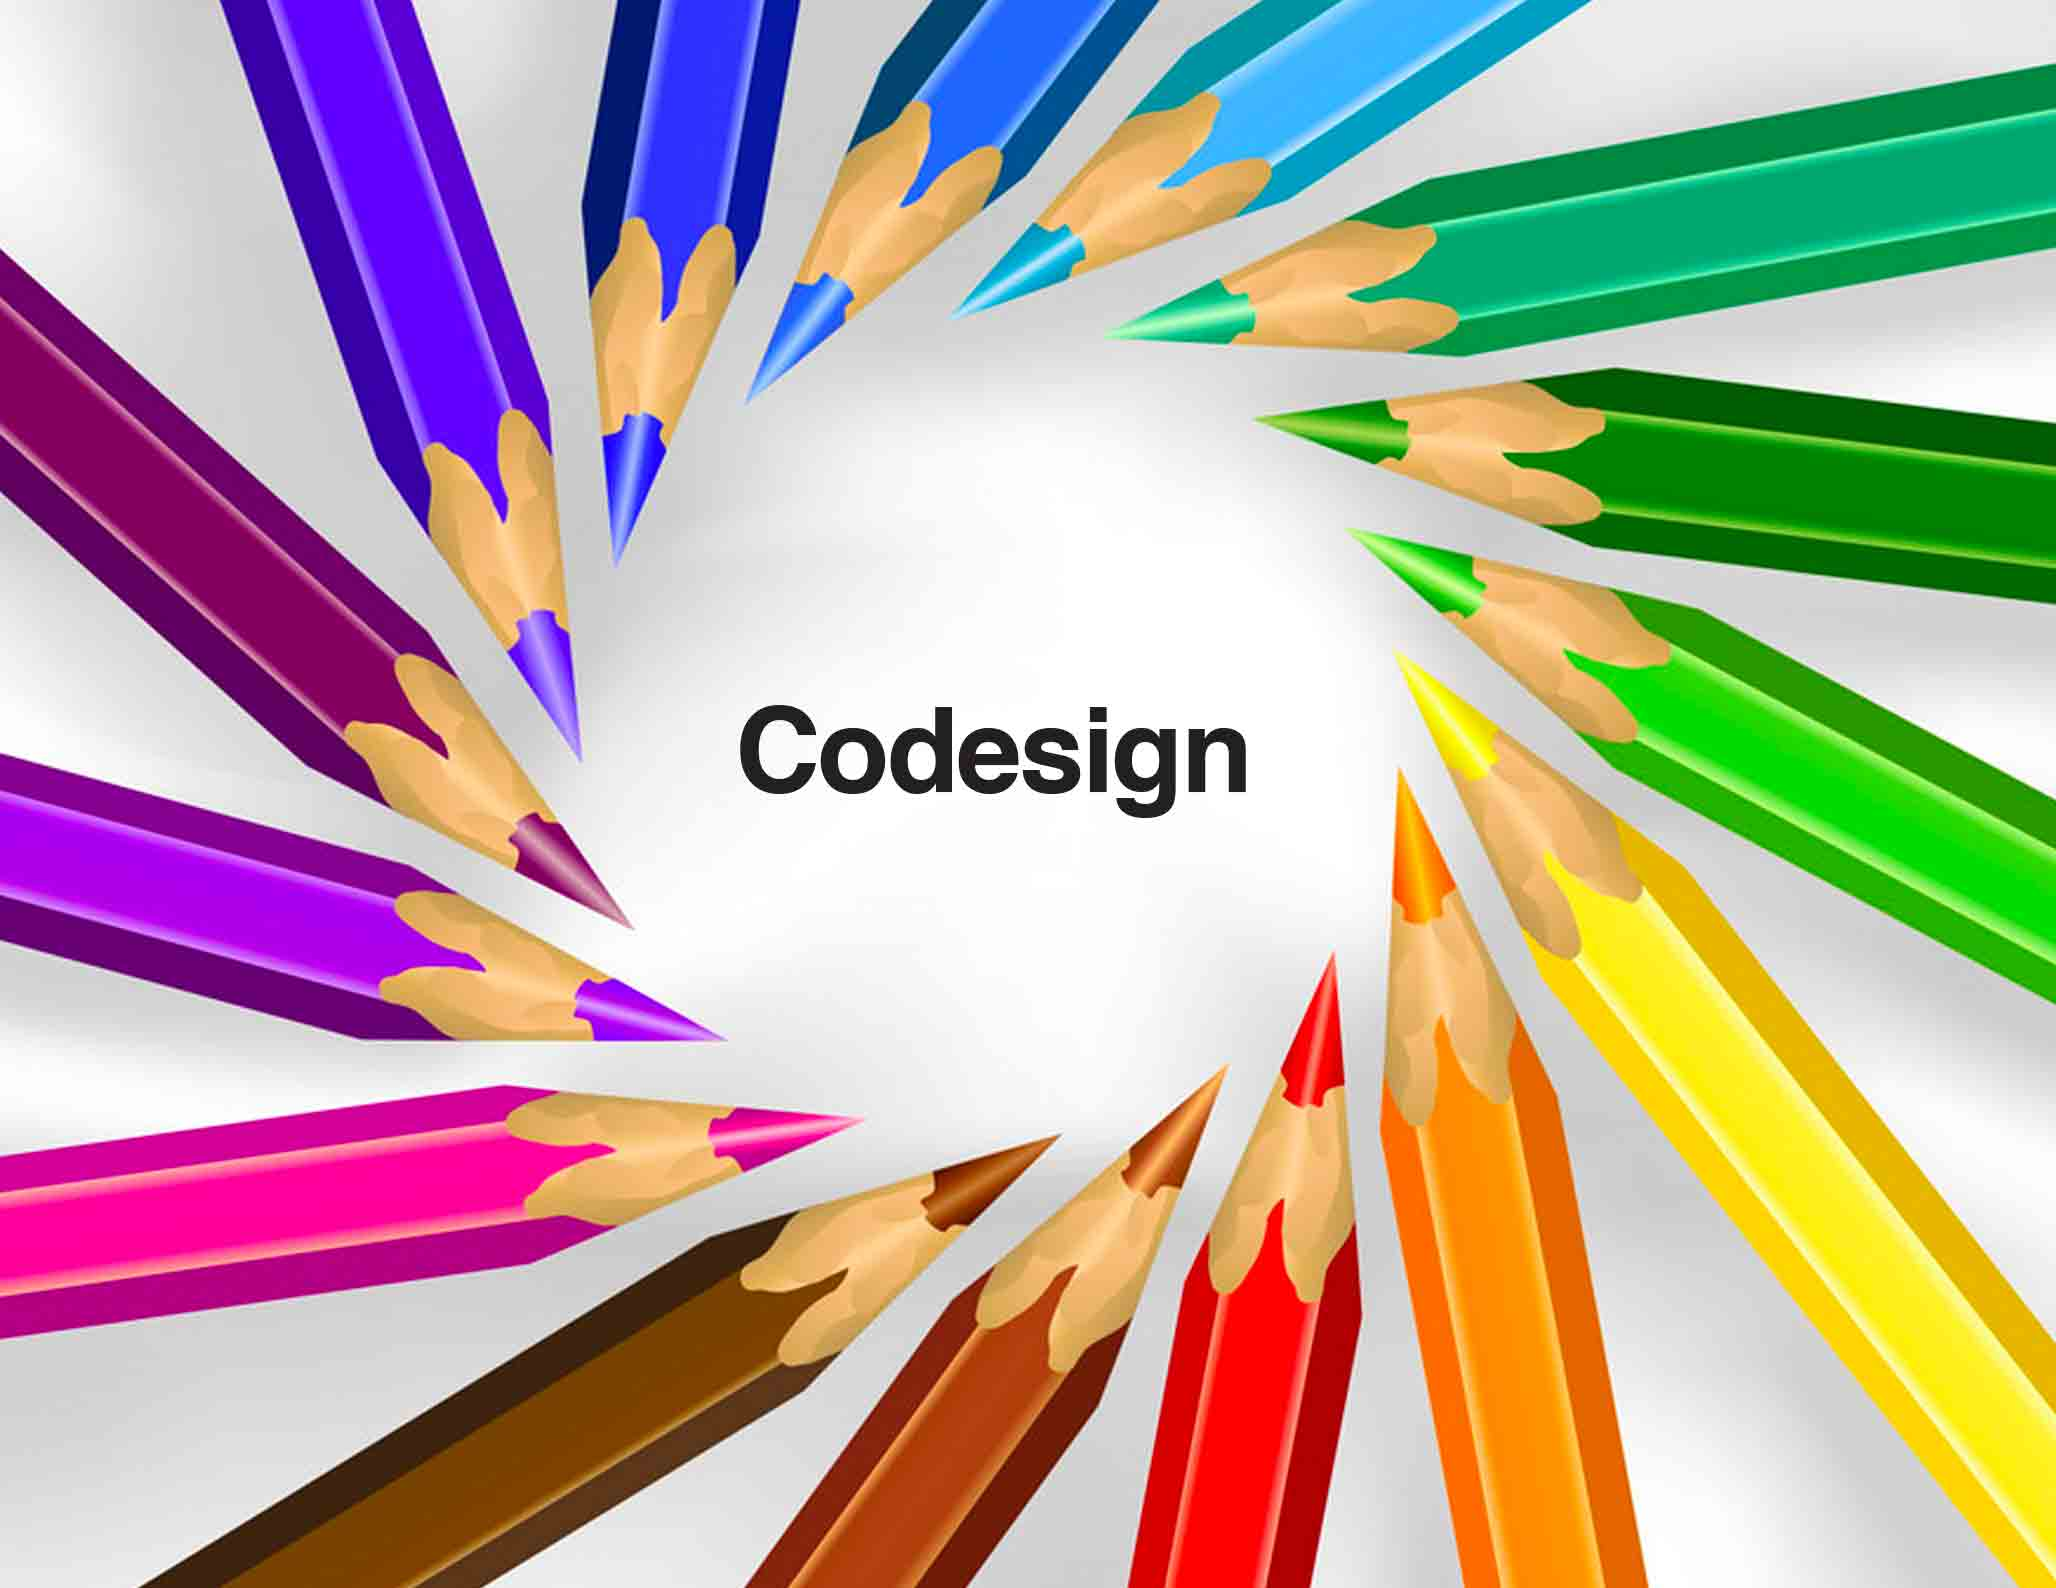 Codesign-pencils.jpg